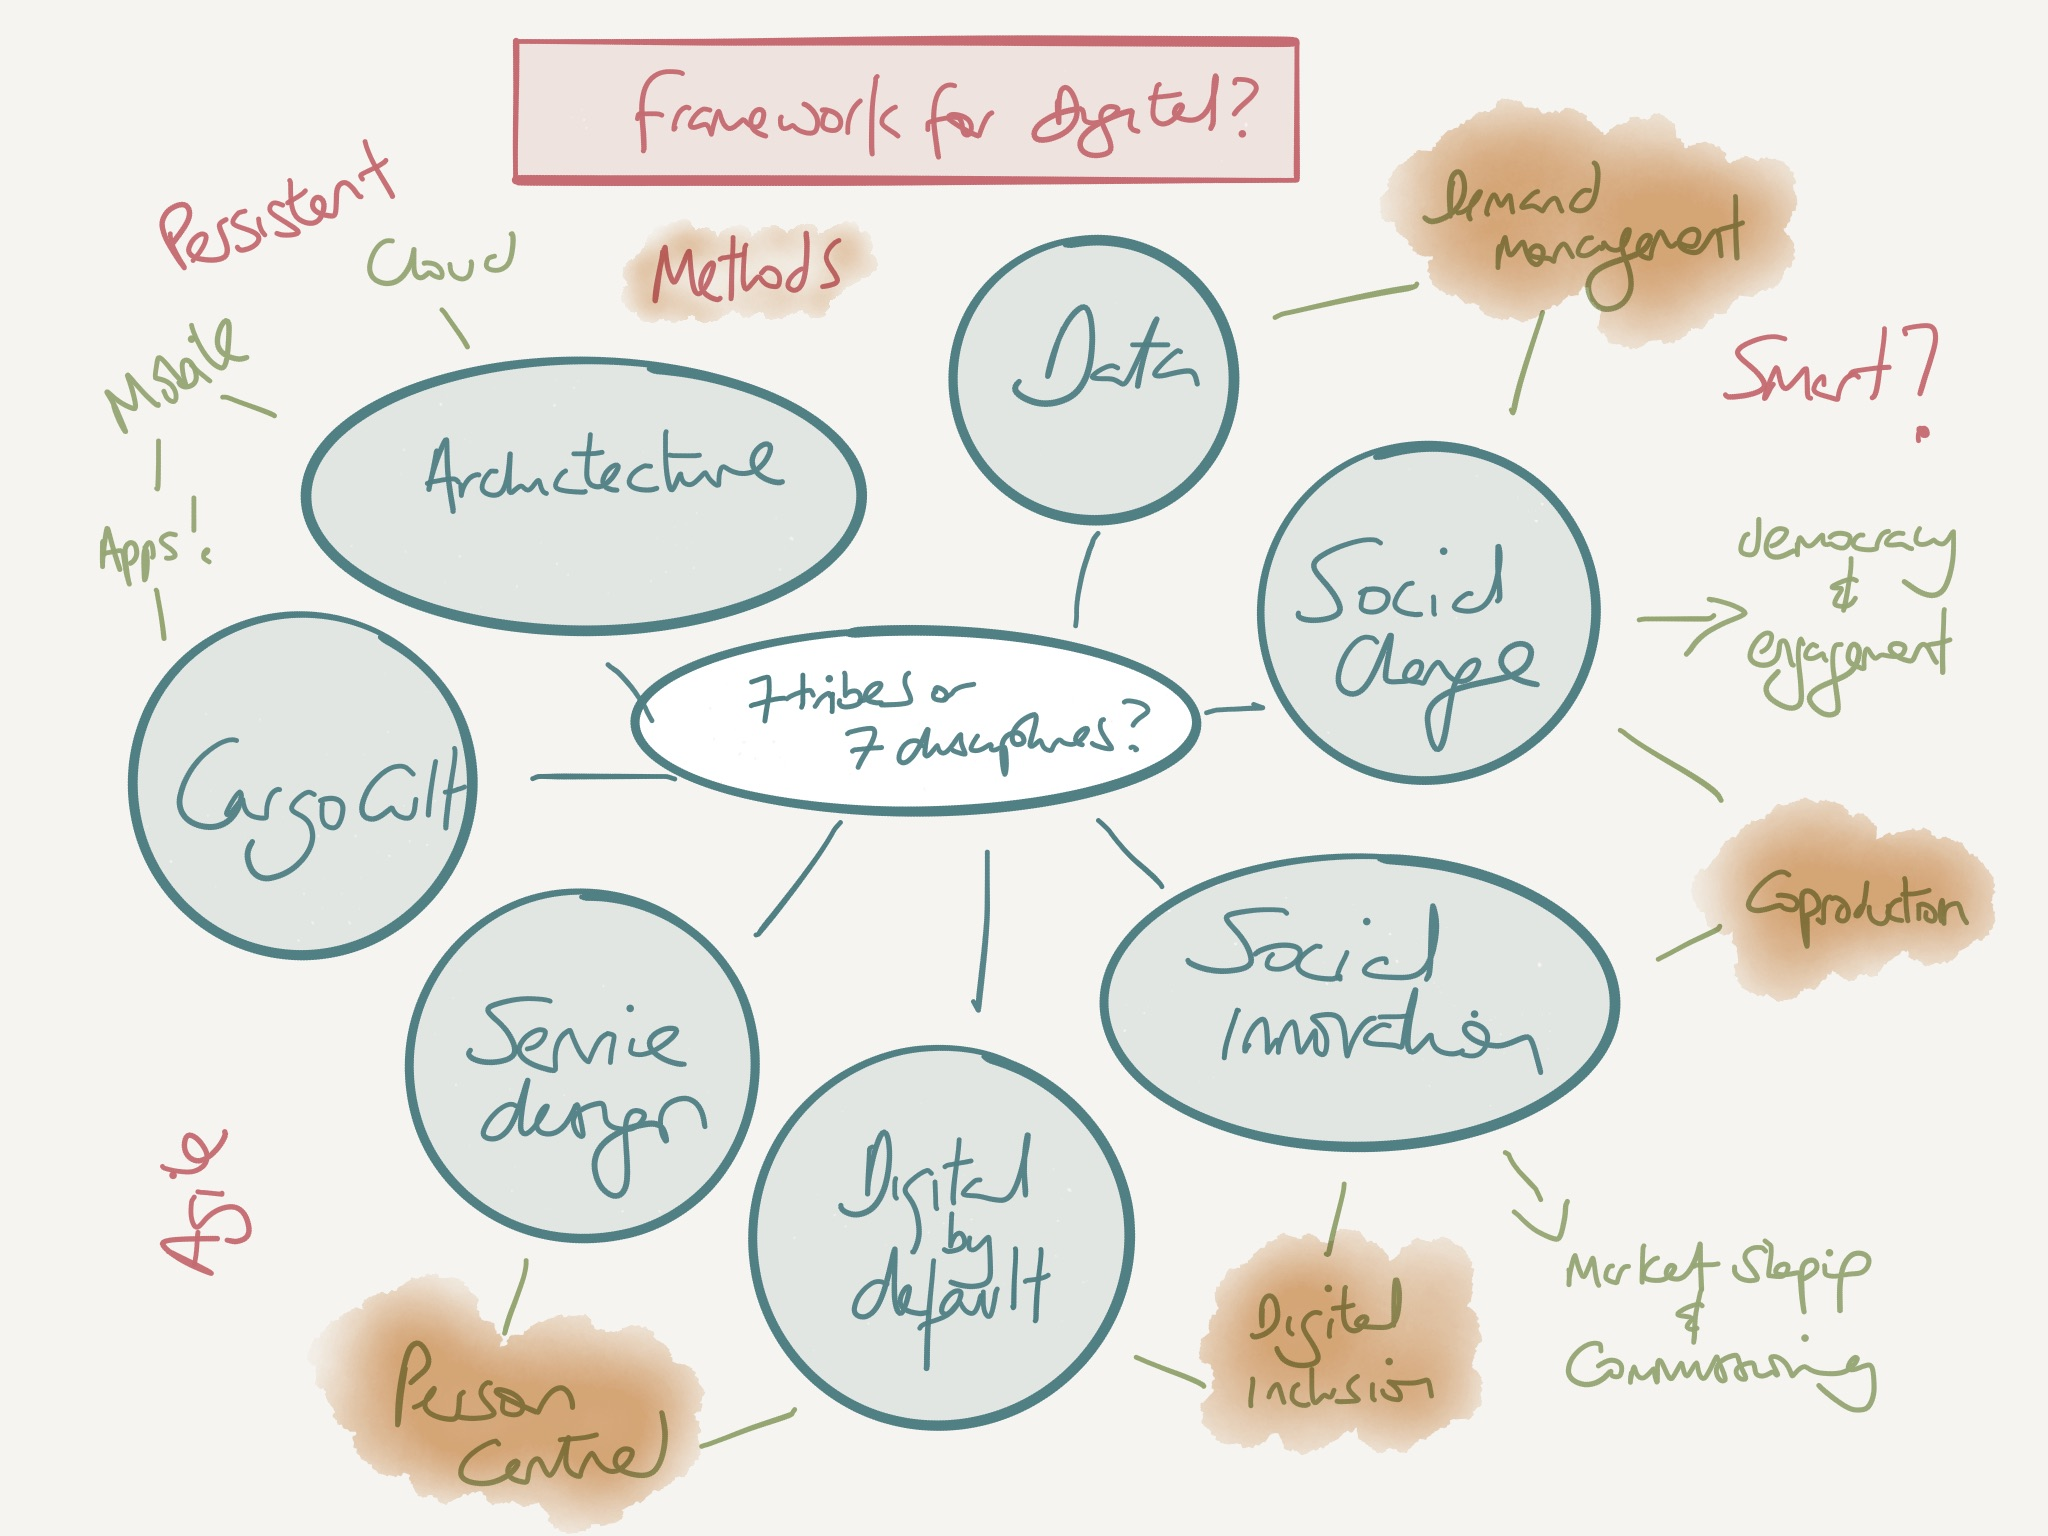 Framework for digital?